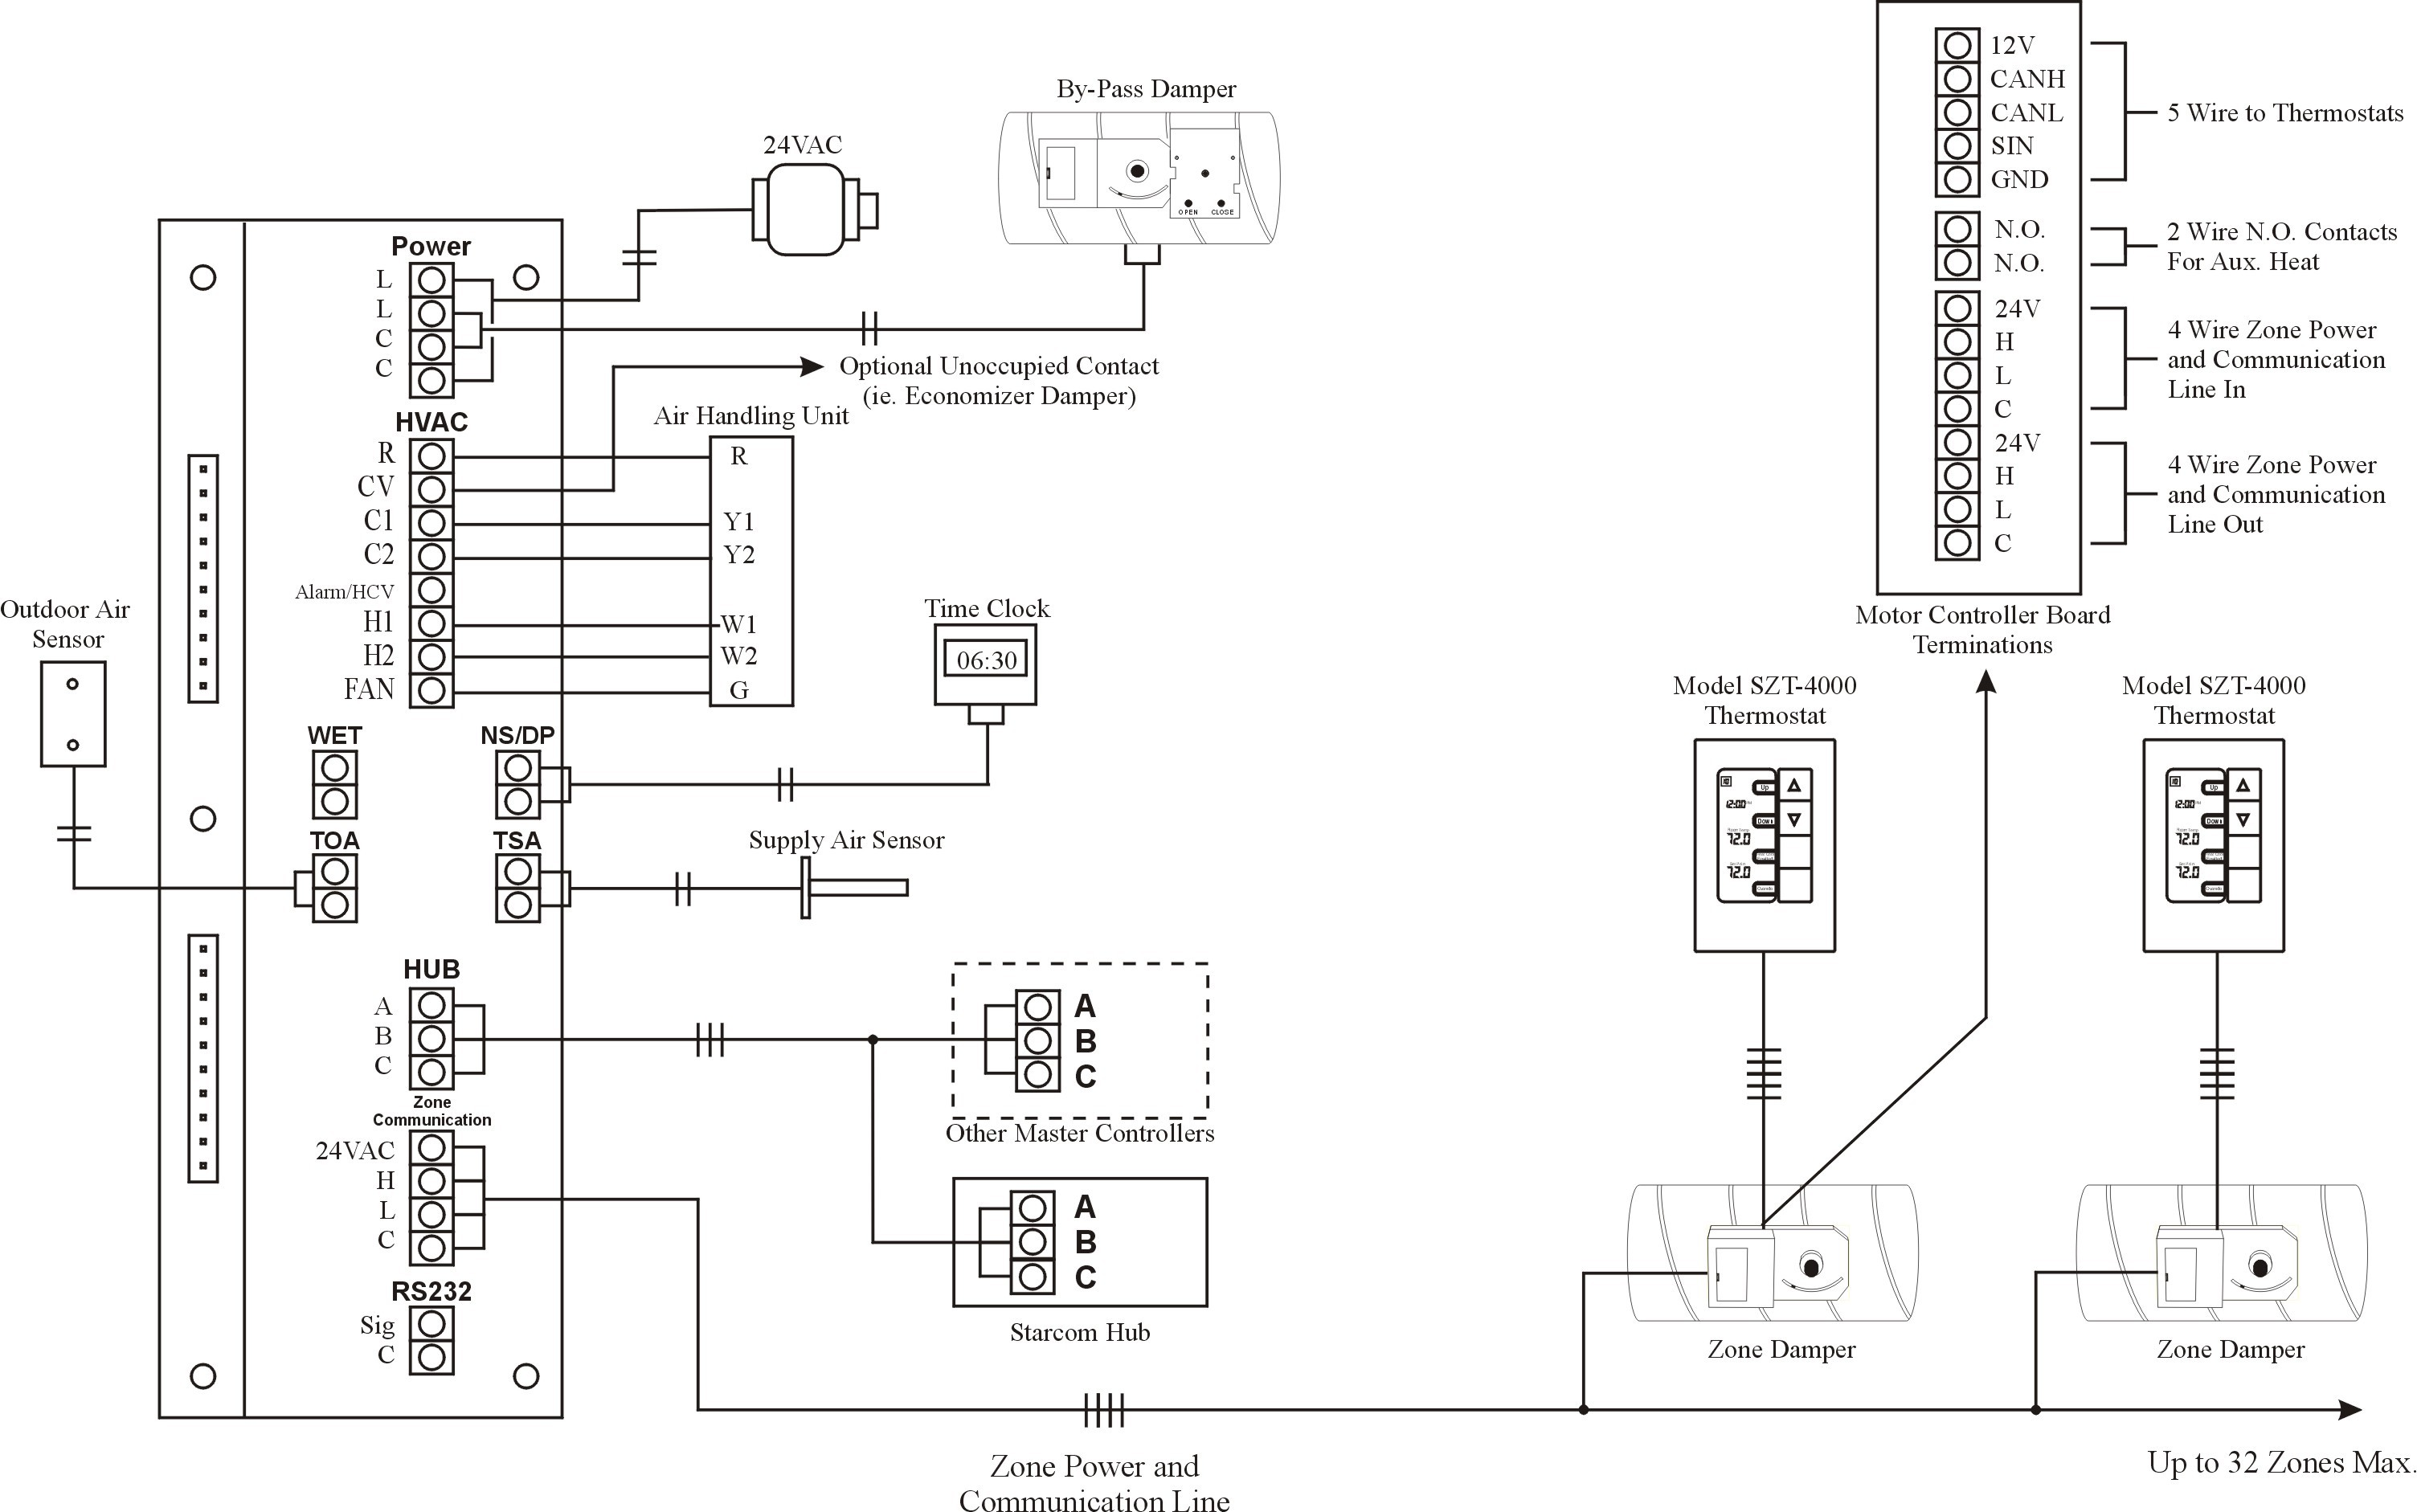 fire alarm system wiring diagram